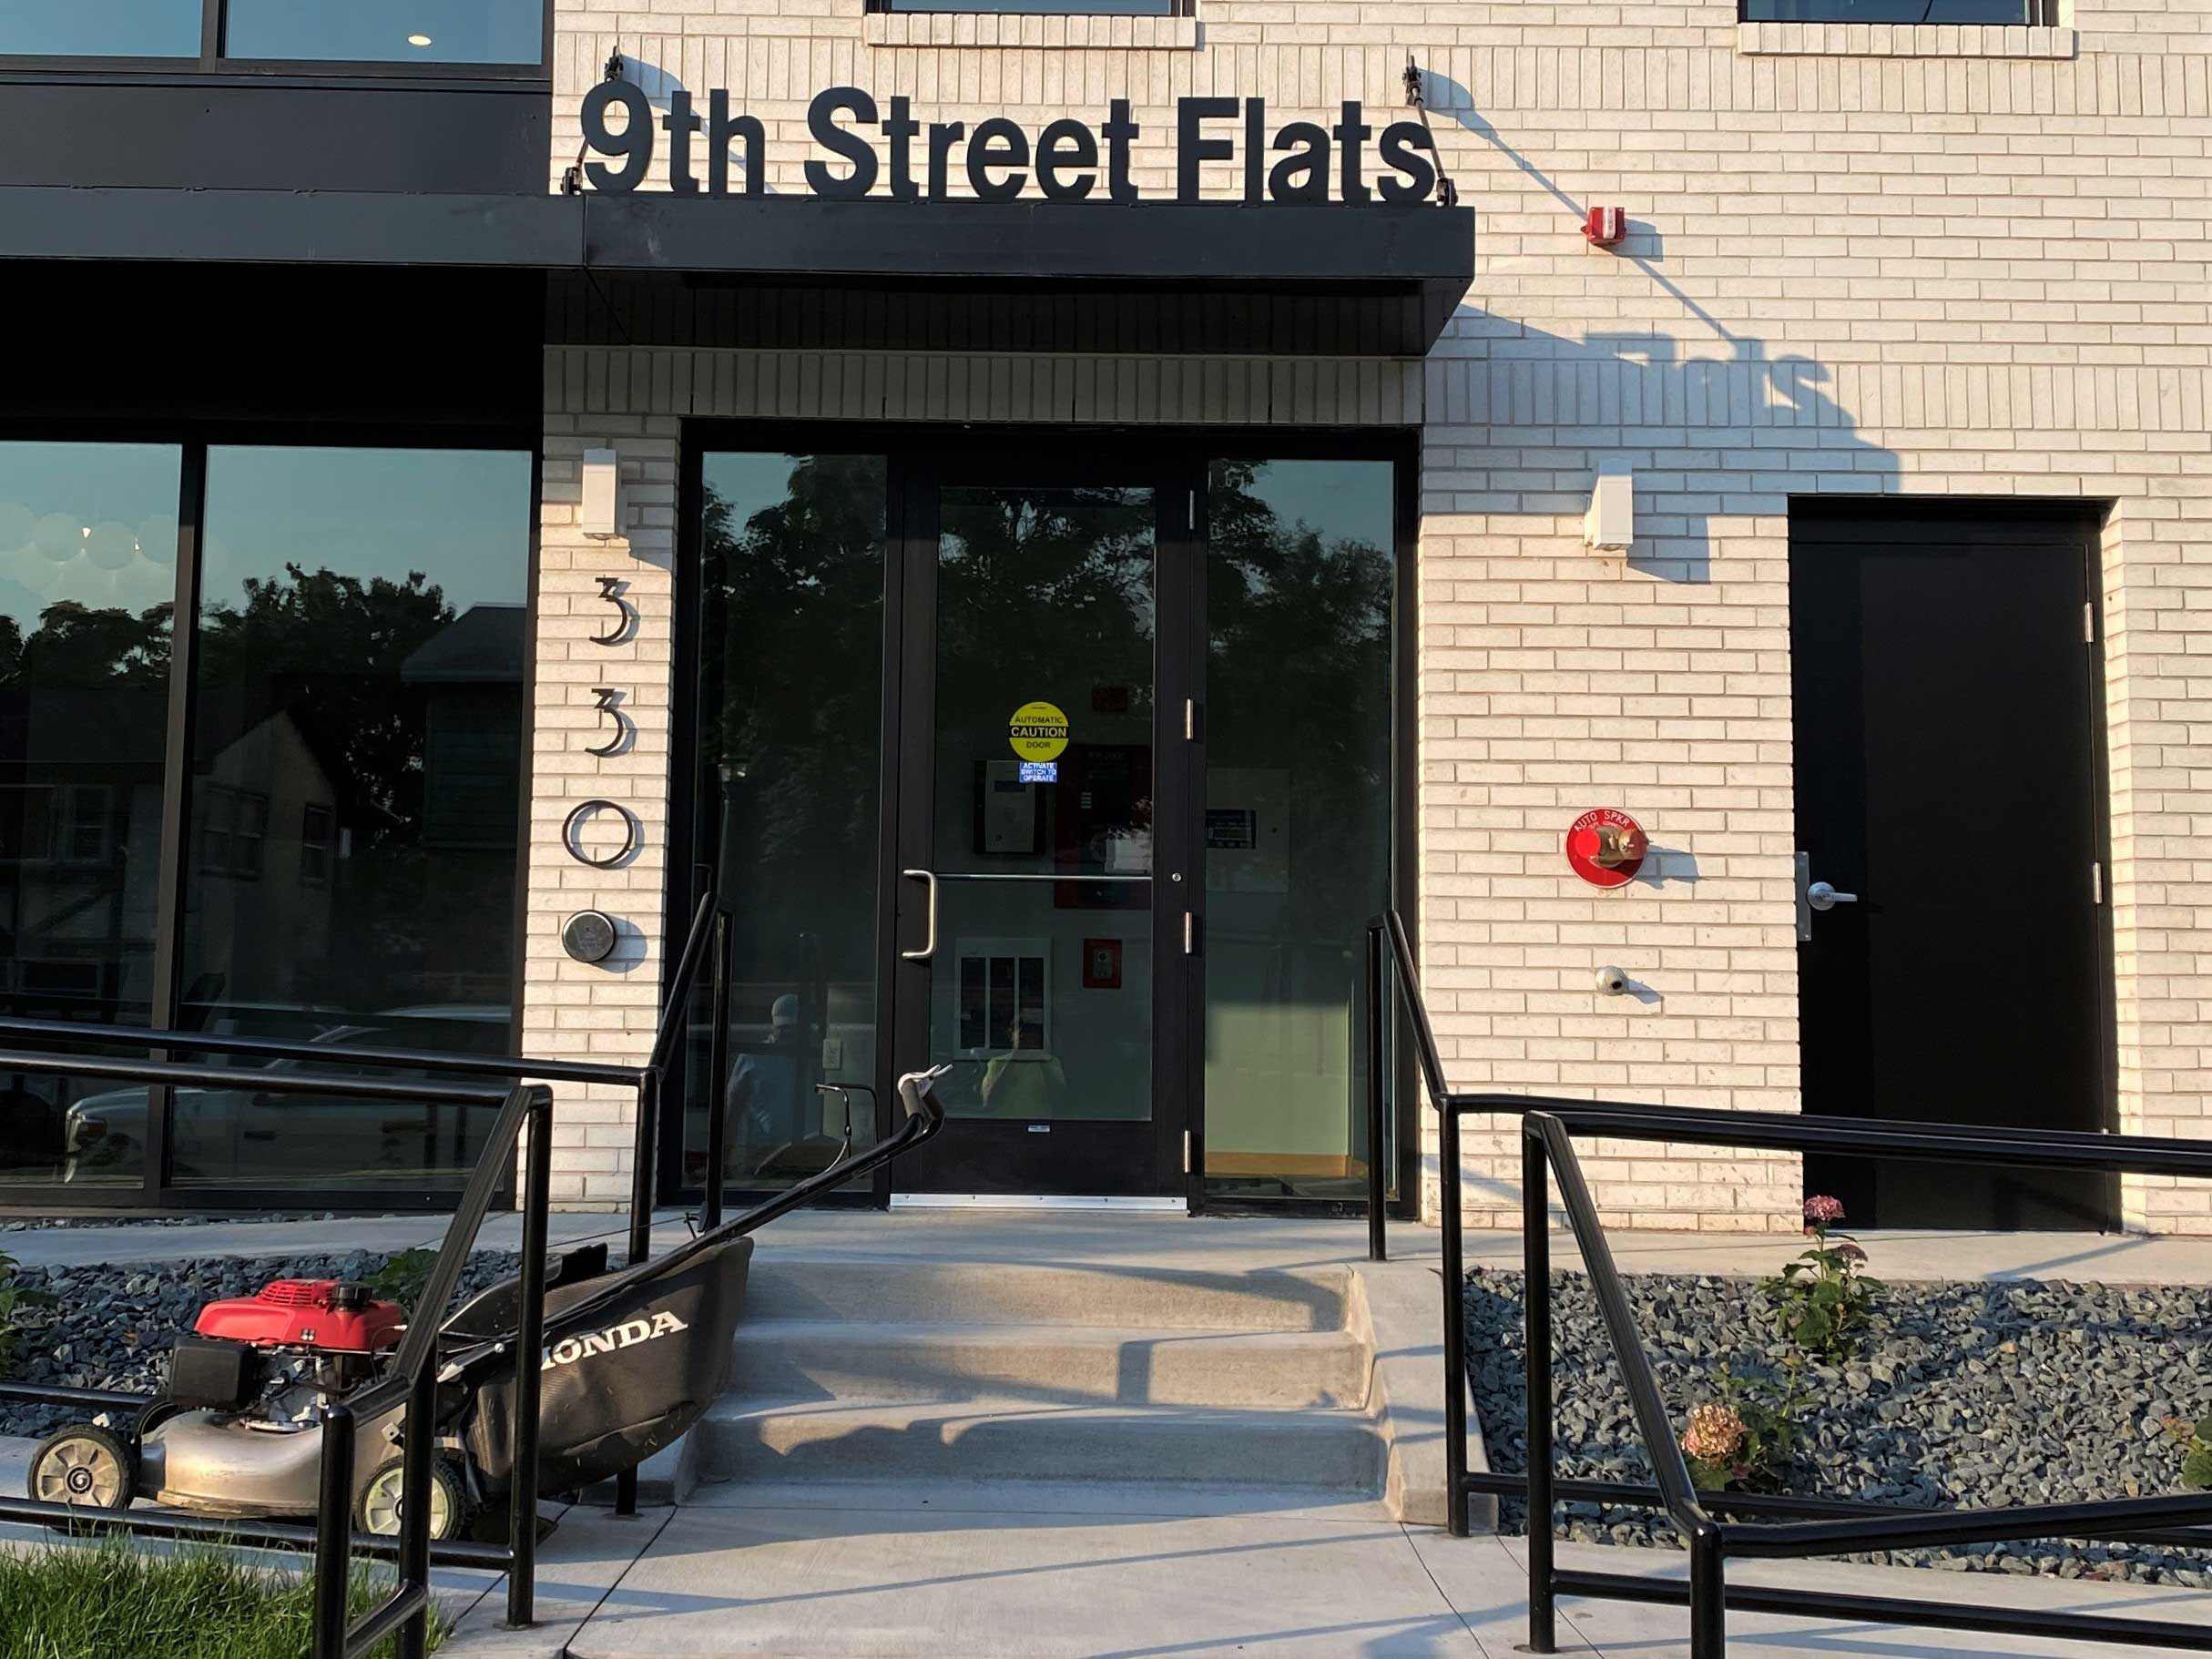 9th street flats - Dimensionall Letters sign - Impression Signs and Graphics